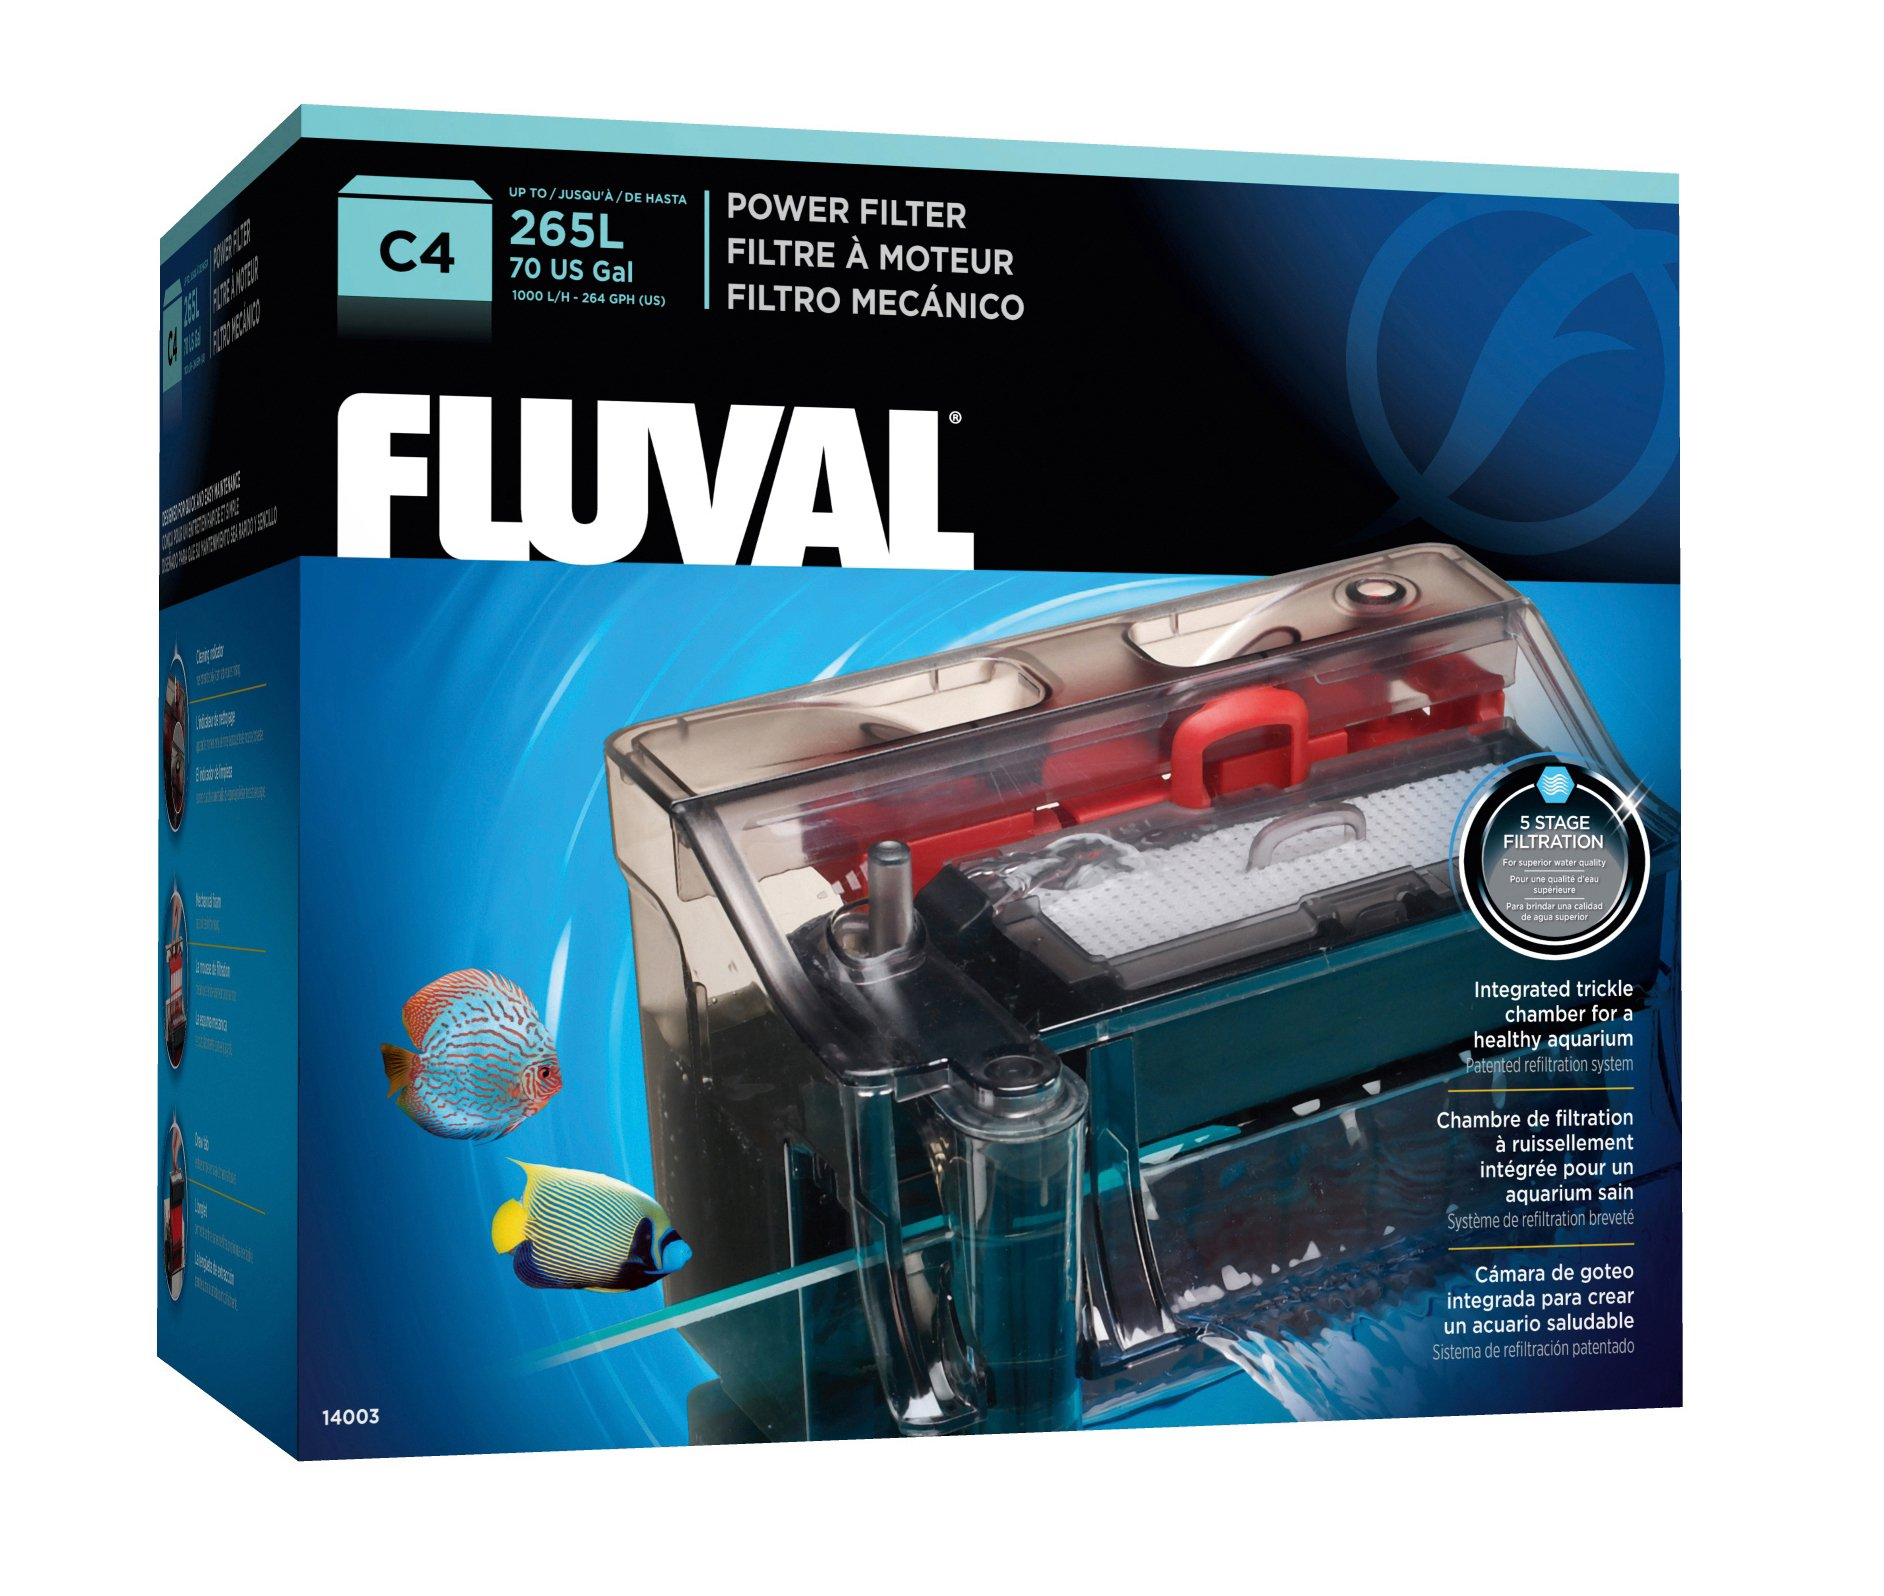 Fluval C4 Power Filter by Fluval